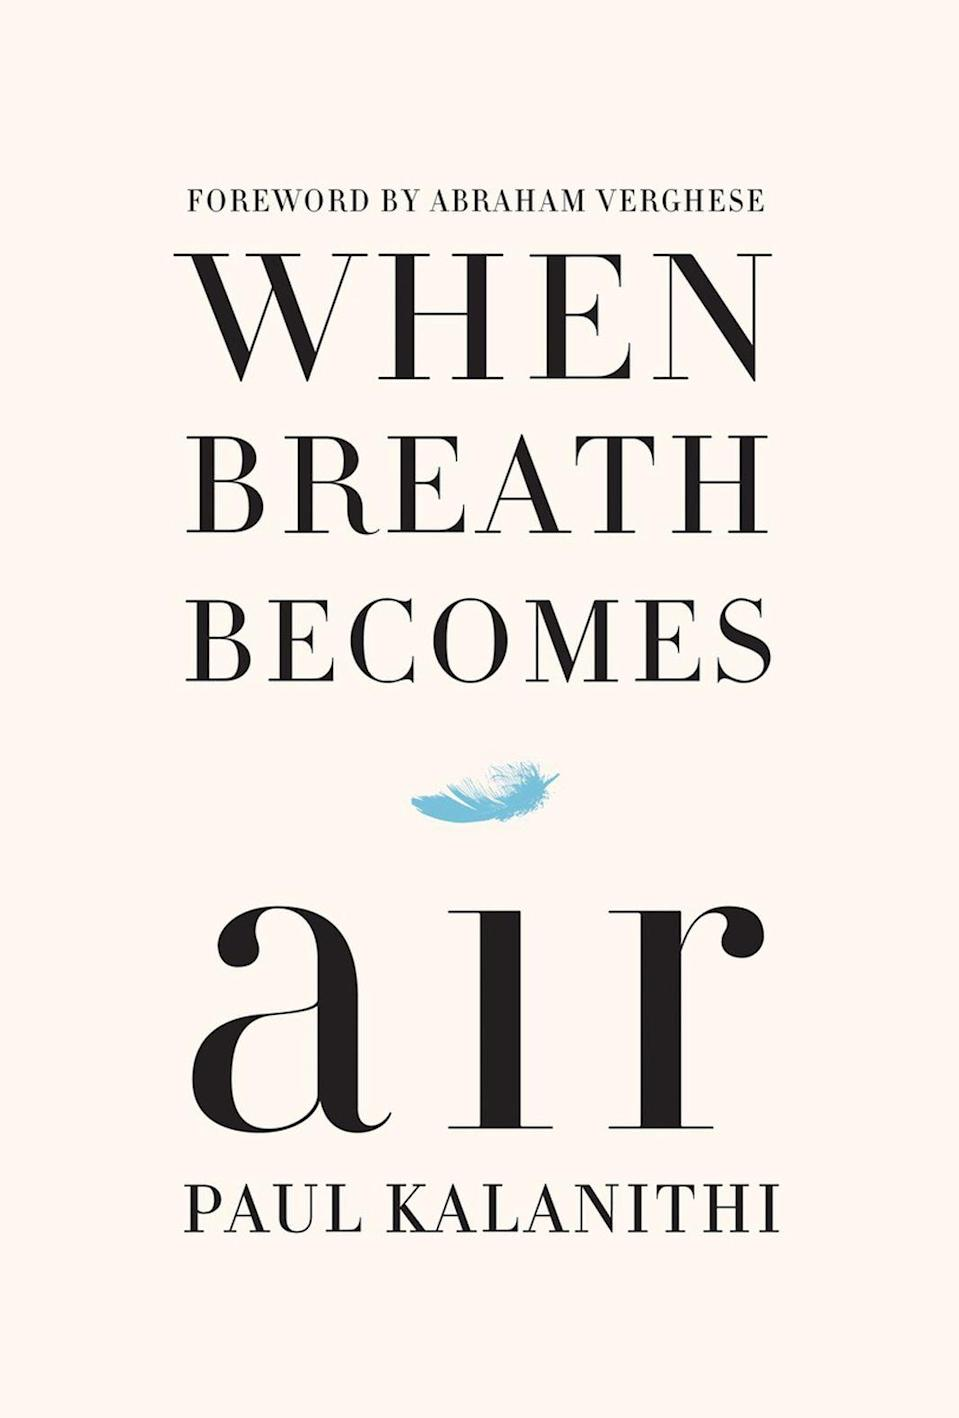 <p><strong><em>When Breath Becomes Air</em></strong></p><p>By Paul Kalanithi</p><p>Paul Kalanithi was a neurosurgeon and writer who died from lung cancer in March 2015. <em>When Breath Becomes Air</em> is his unforgettably powerful and heartbreaking memoir. It delves into some of the biggest questions we ponder as humans: What makes life worth living as we approach death? What do you do when your future is suddenly in doubt? What does it mean to have a child as your own life fades away? Tissues at the ready! </p>